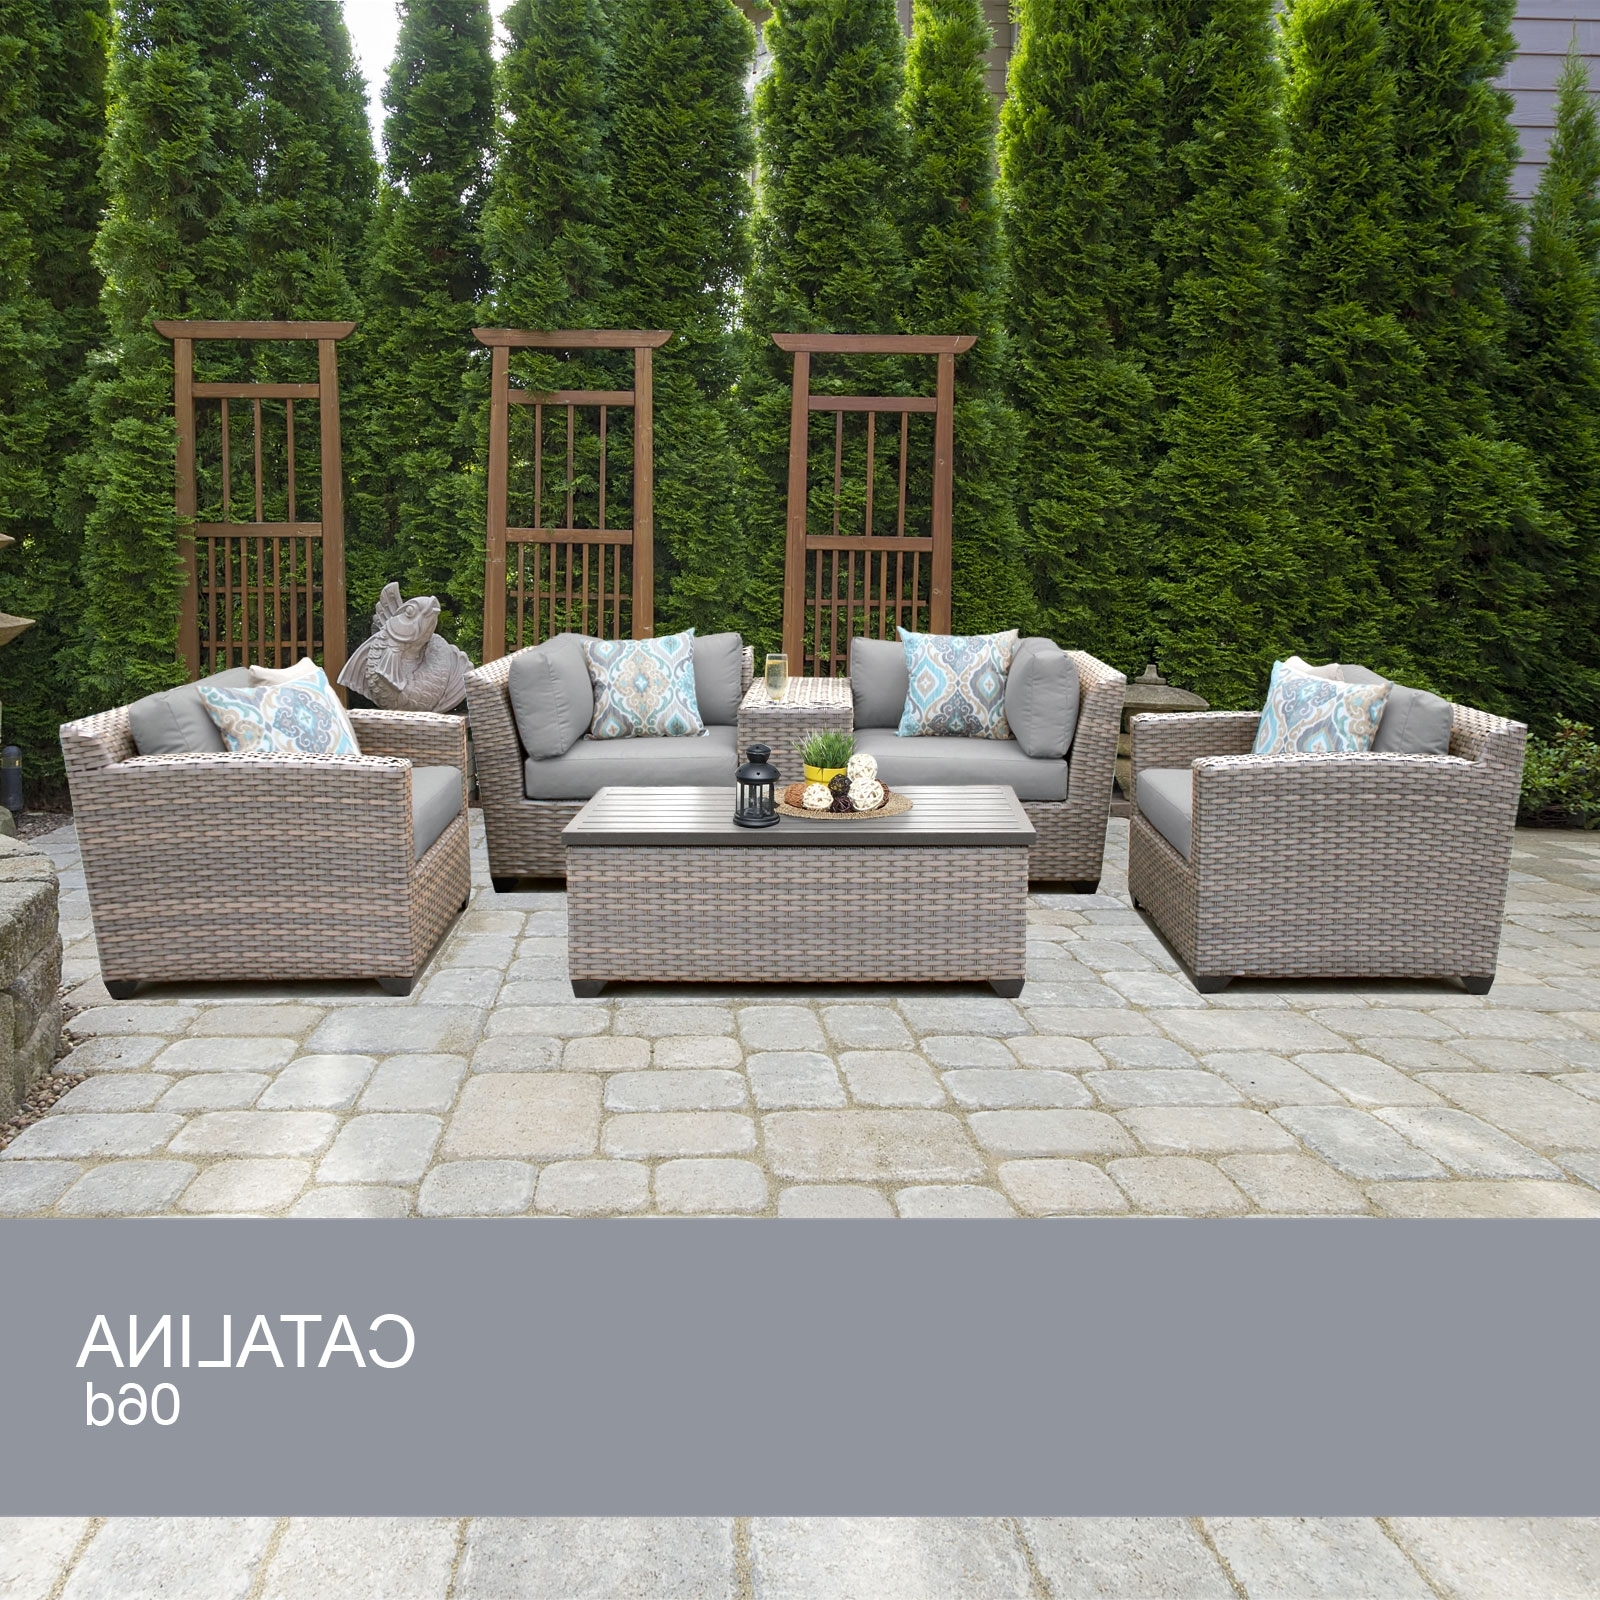 Ebay Patio Conversation Sets Throughout 2019 Resin Wicker Patio Furniture – Airavata (View 5 of 20)